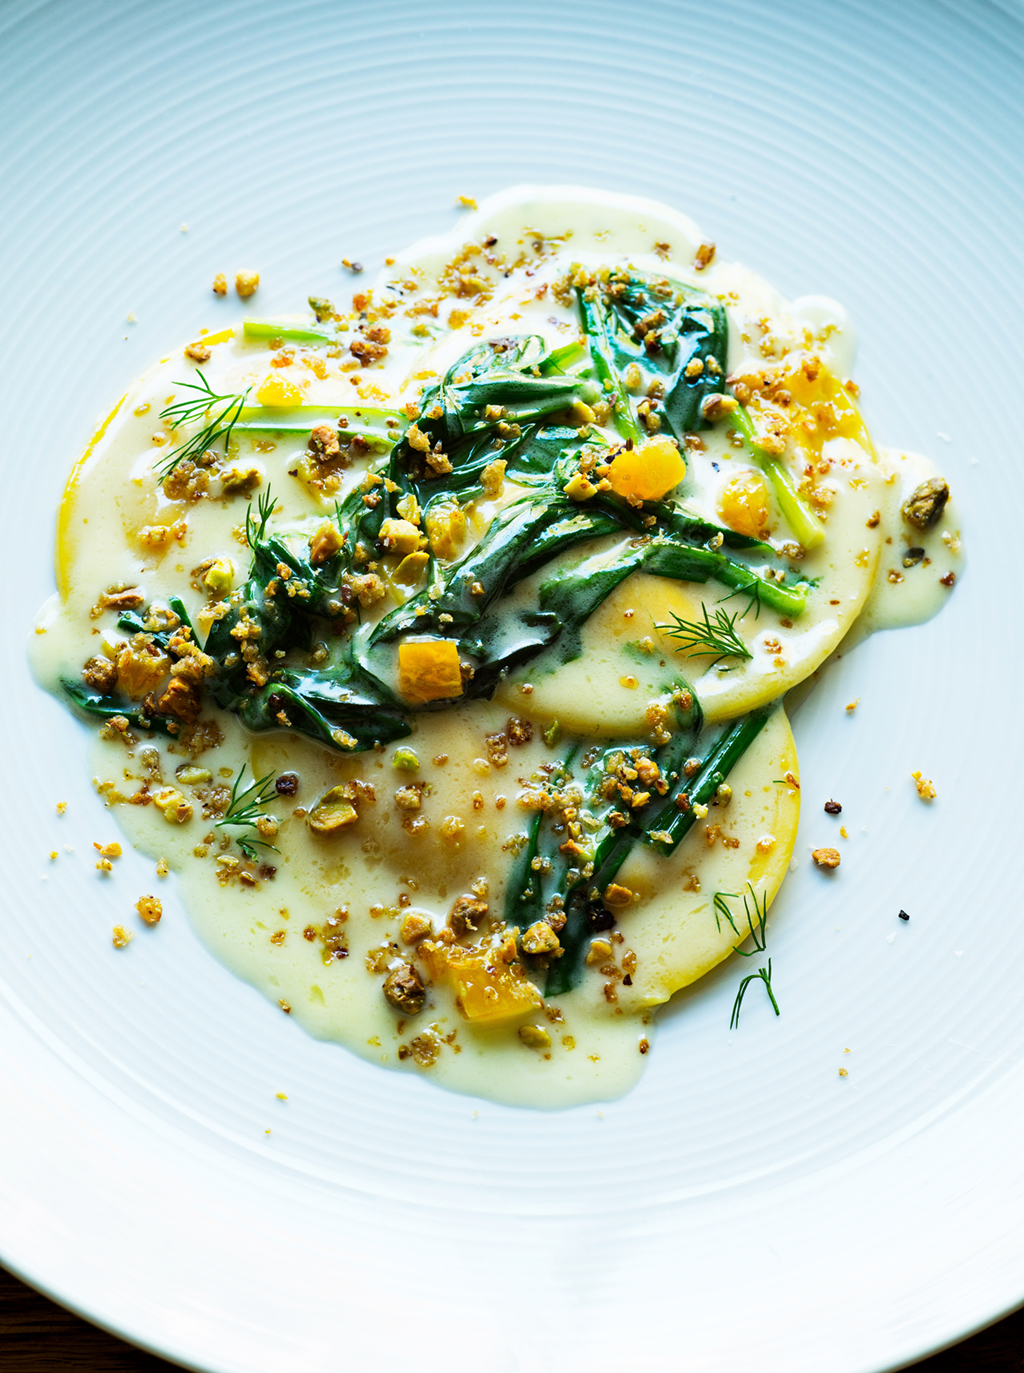 Tail Up Goat's carrot ravioli with apricot. Photograph by Scott Suchman.